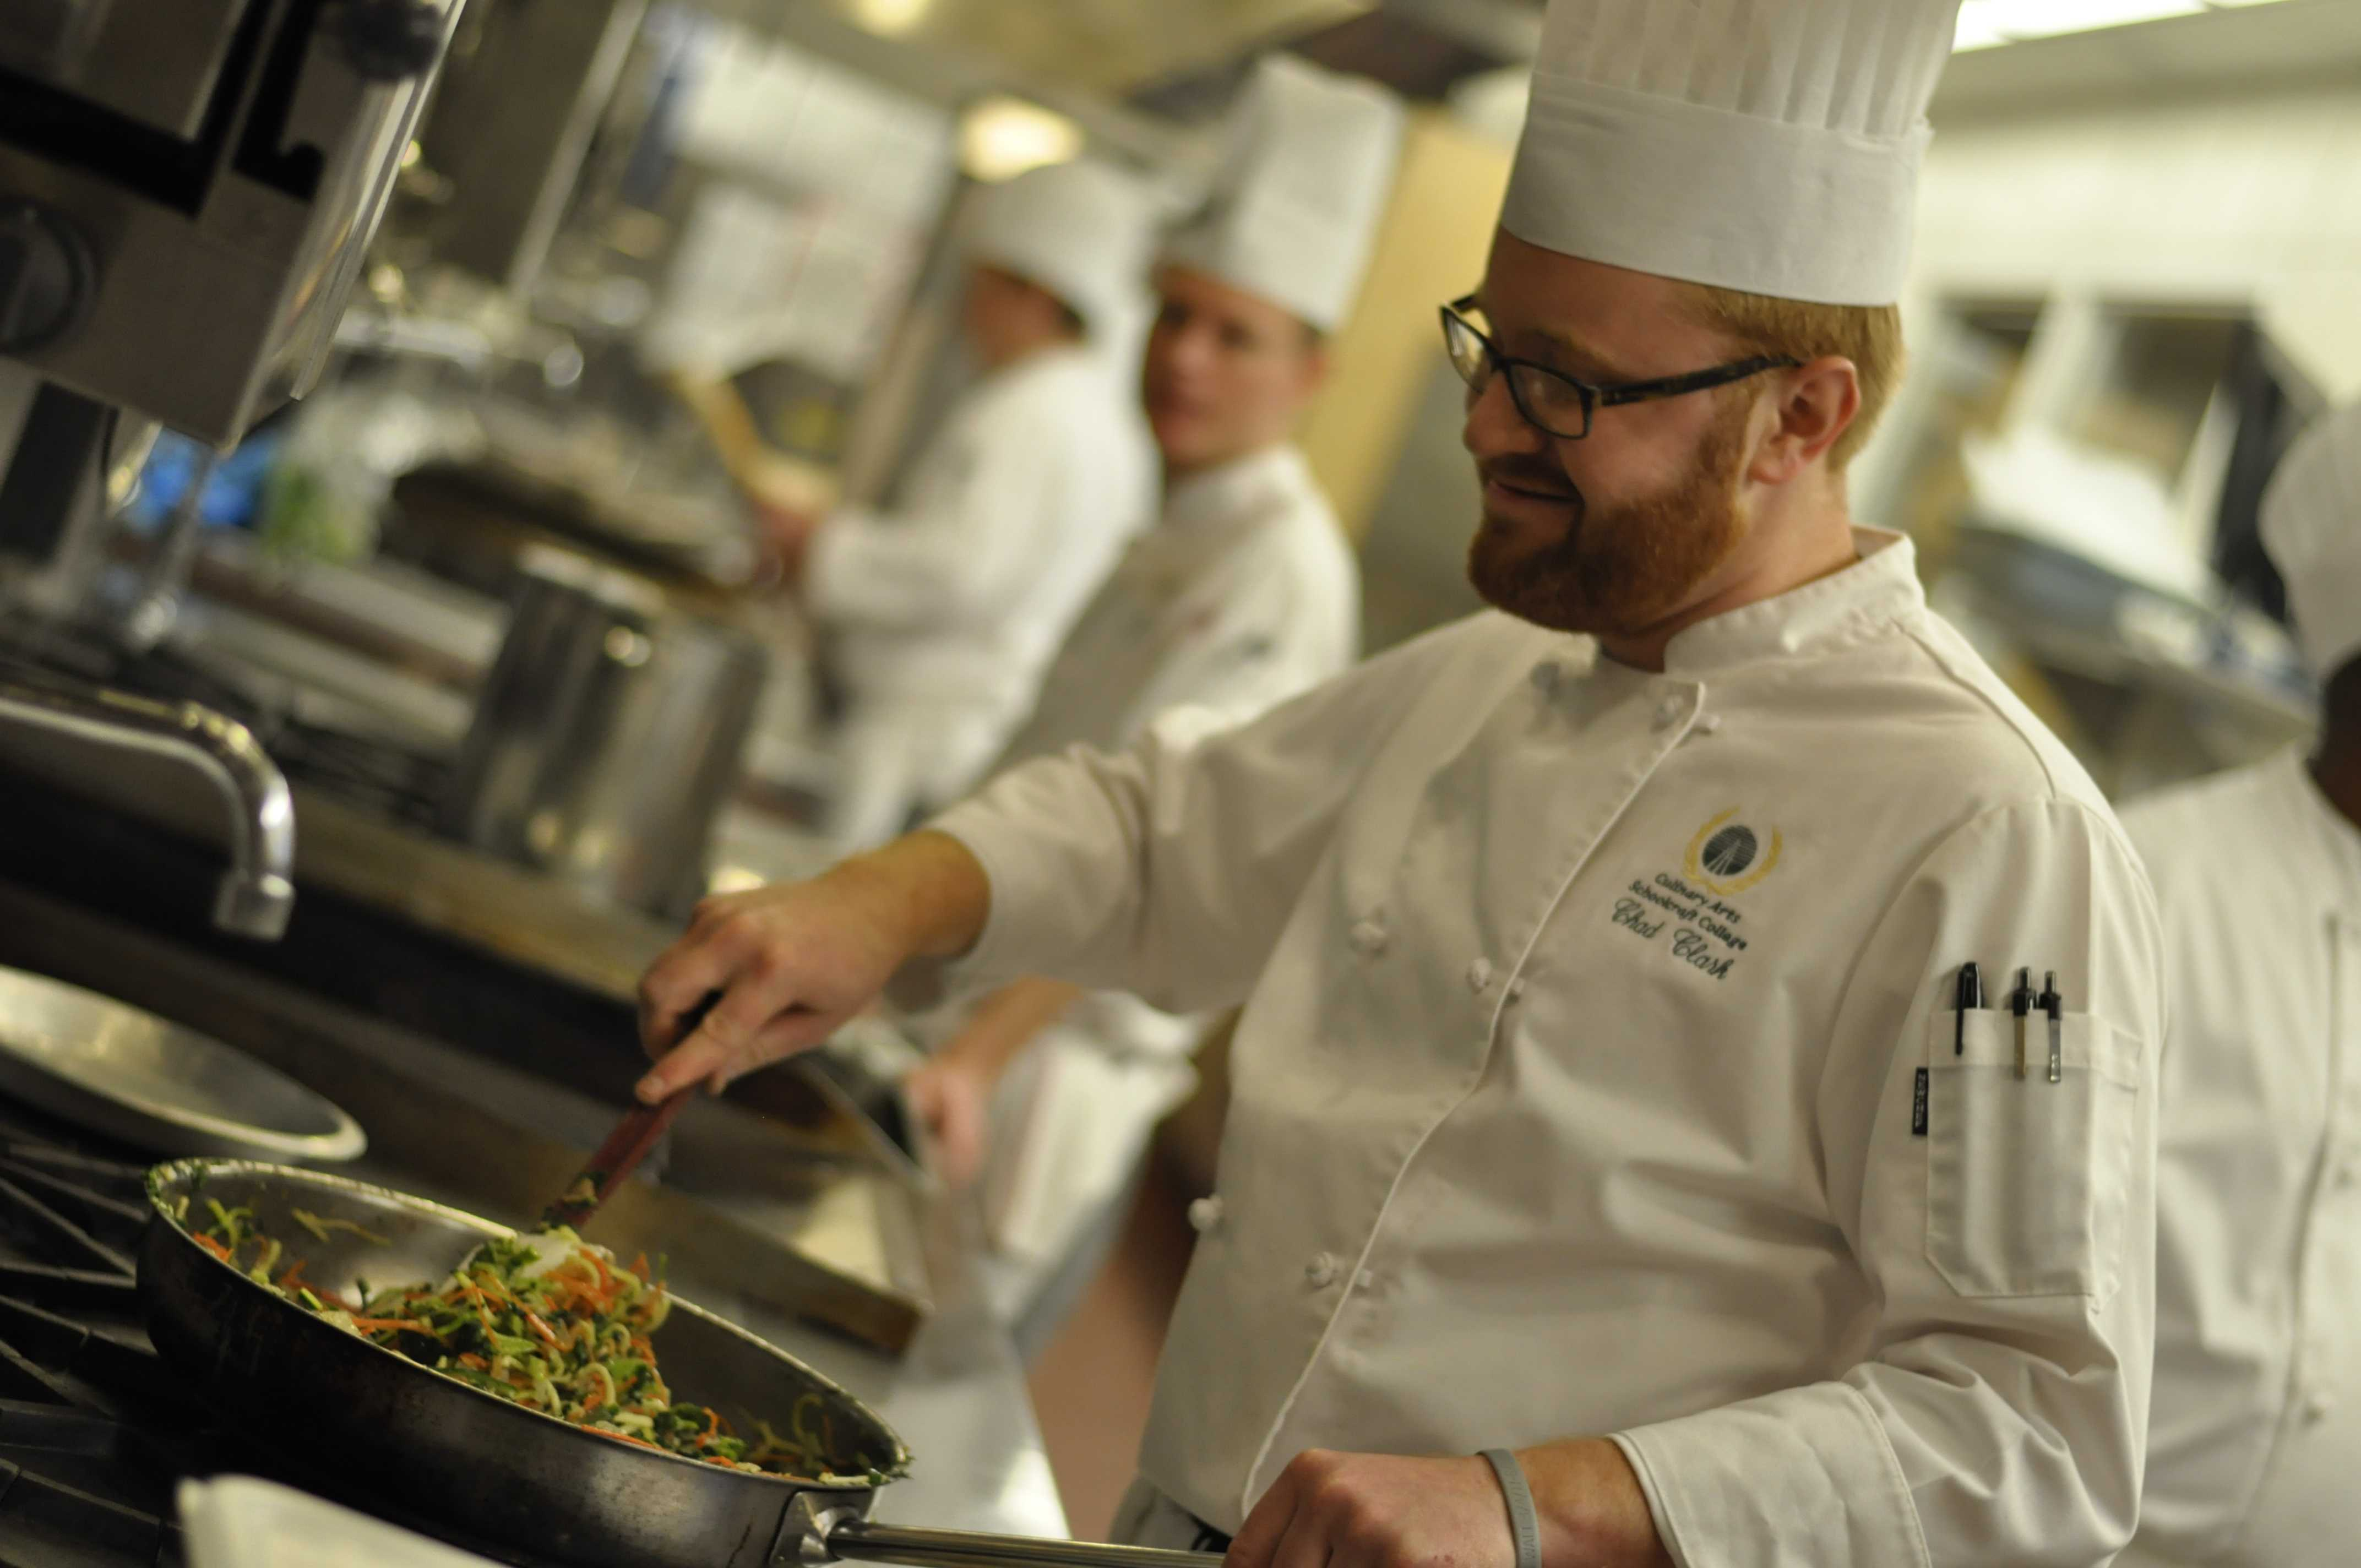 Chad Clark works on part of the ingredients needed to make vegetable lasagna. Photo by Nathan Gartner.